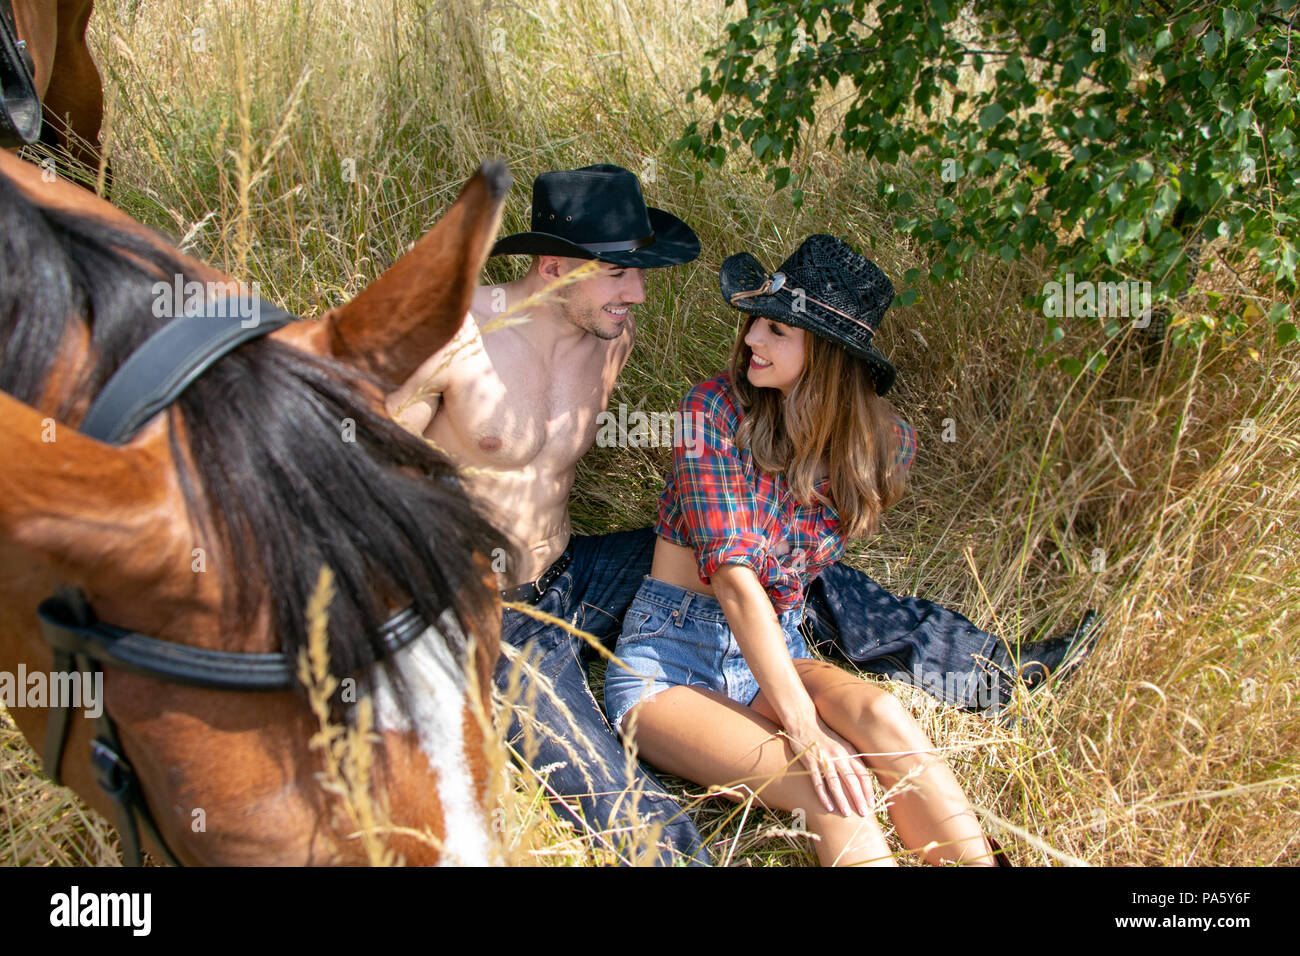 Cowgirl And Cowboy Country And Western Man And Woman With Horse And Saddle On Farm Ranch Stock Photo Alamy